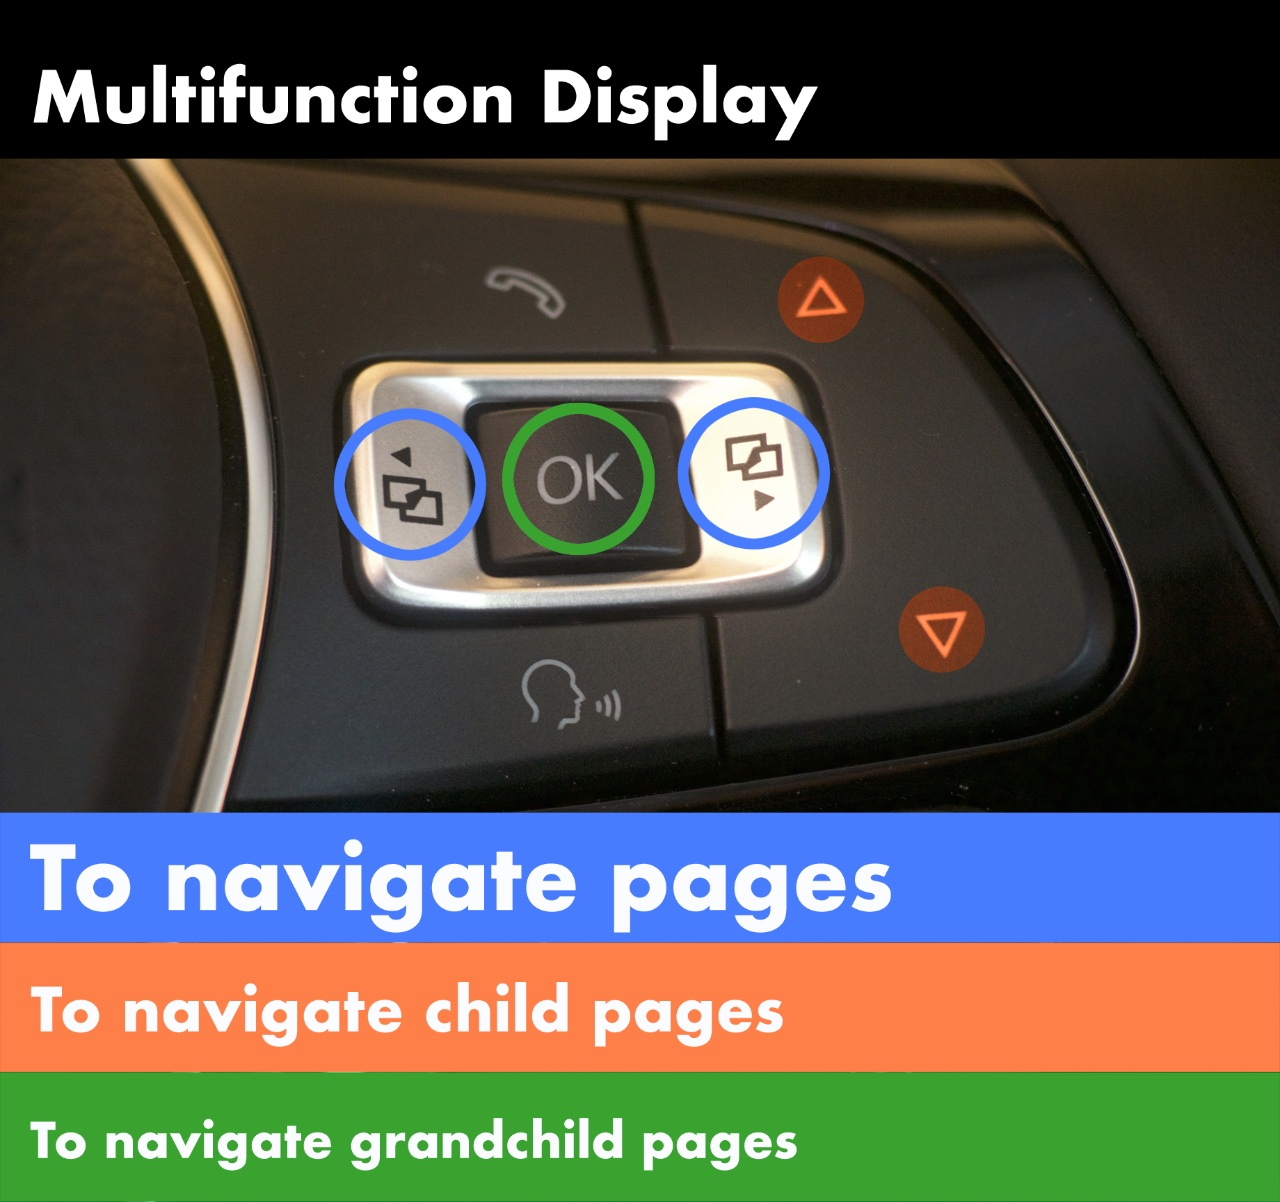 Multifunction Display - how to use the steering wheel buttons to get to the page you want